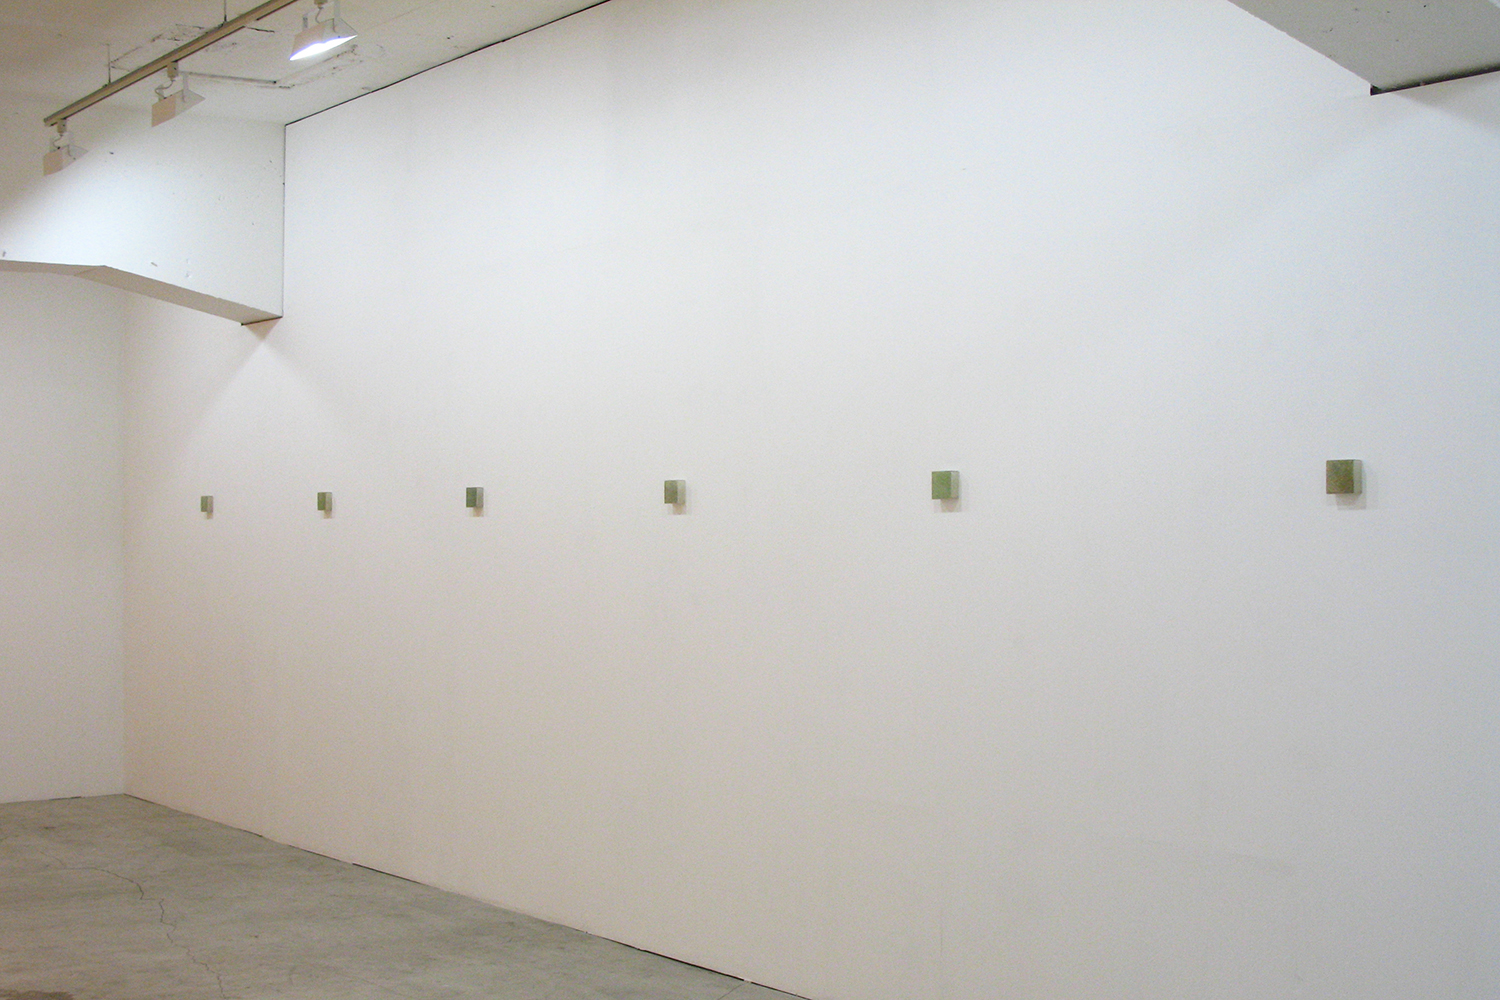 Installation view<br>Photo-painting 草上のかおり|Scent on the grass - series|7.5 x 7.5 x 3 cm|Oil on FRP, mixed media| 2009 each